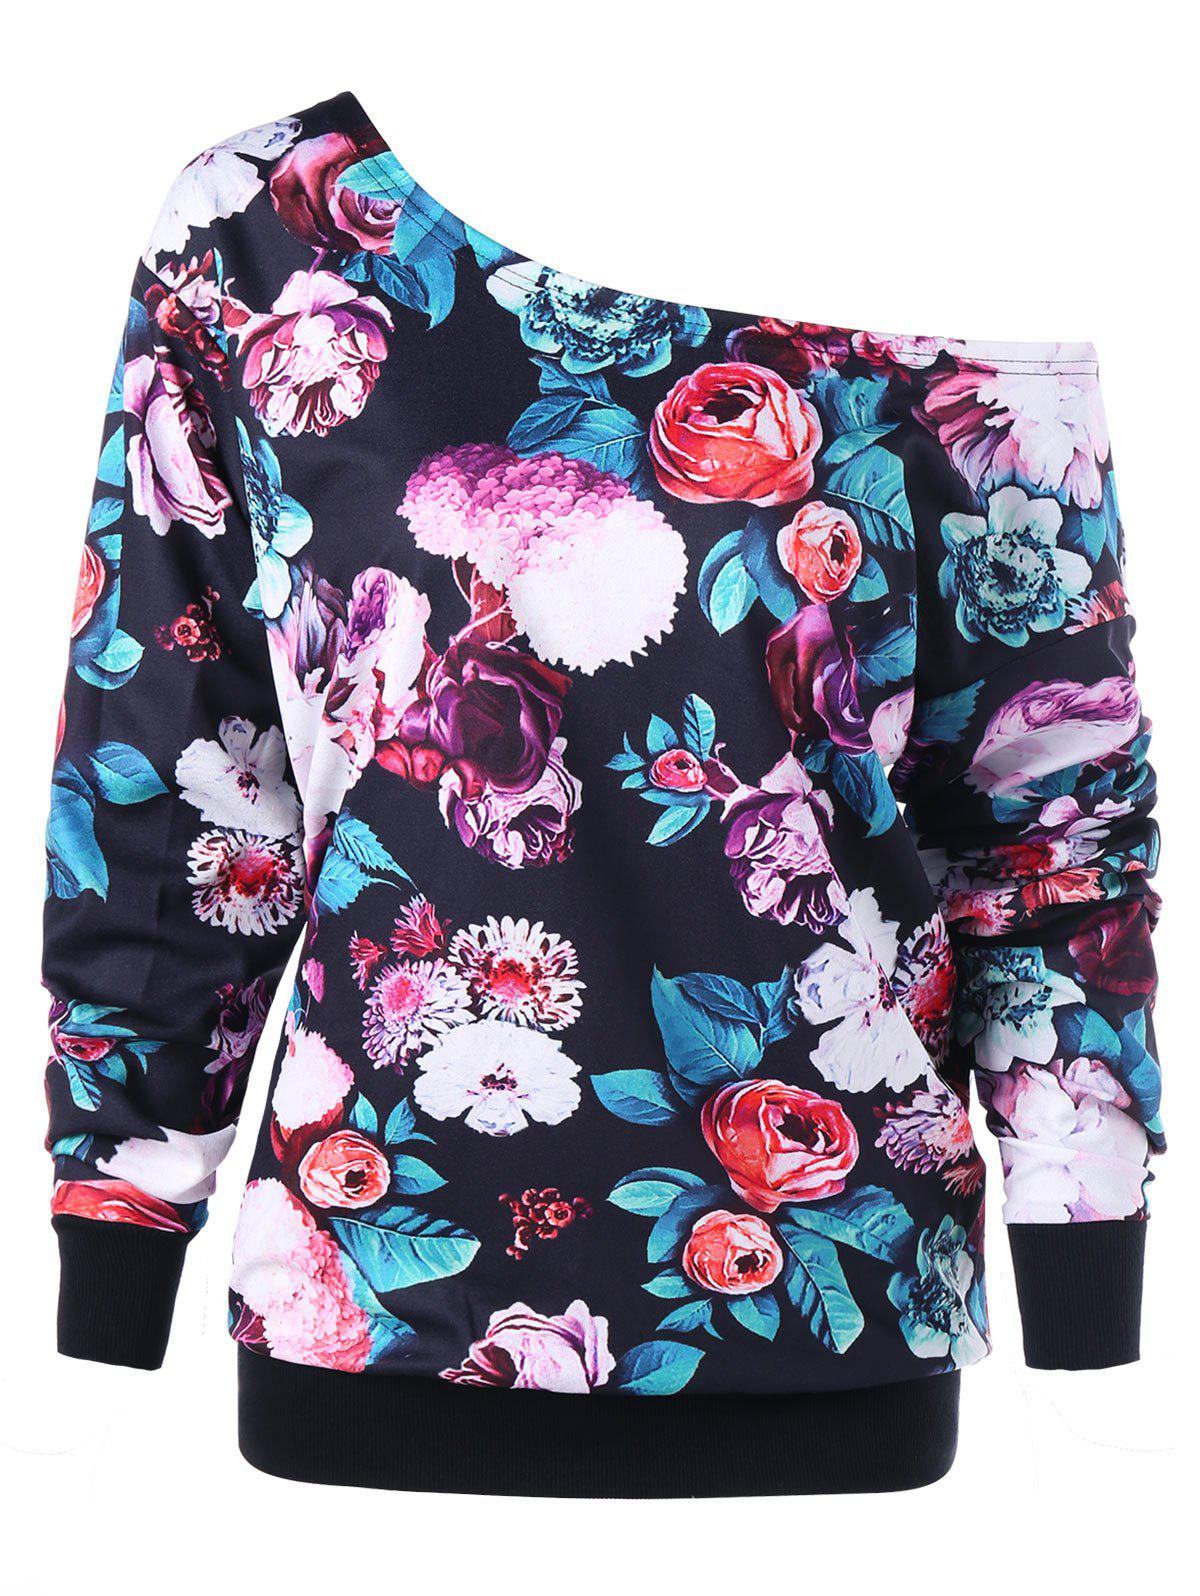 Plus Size Allover Floral Skew Collar Sweatshirt plus size skew neck floral sweatshirt